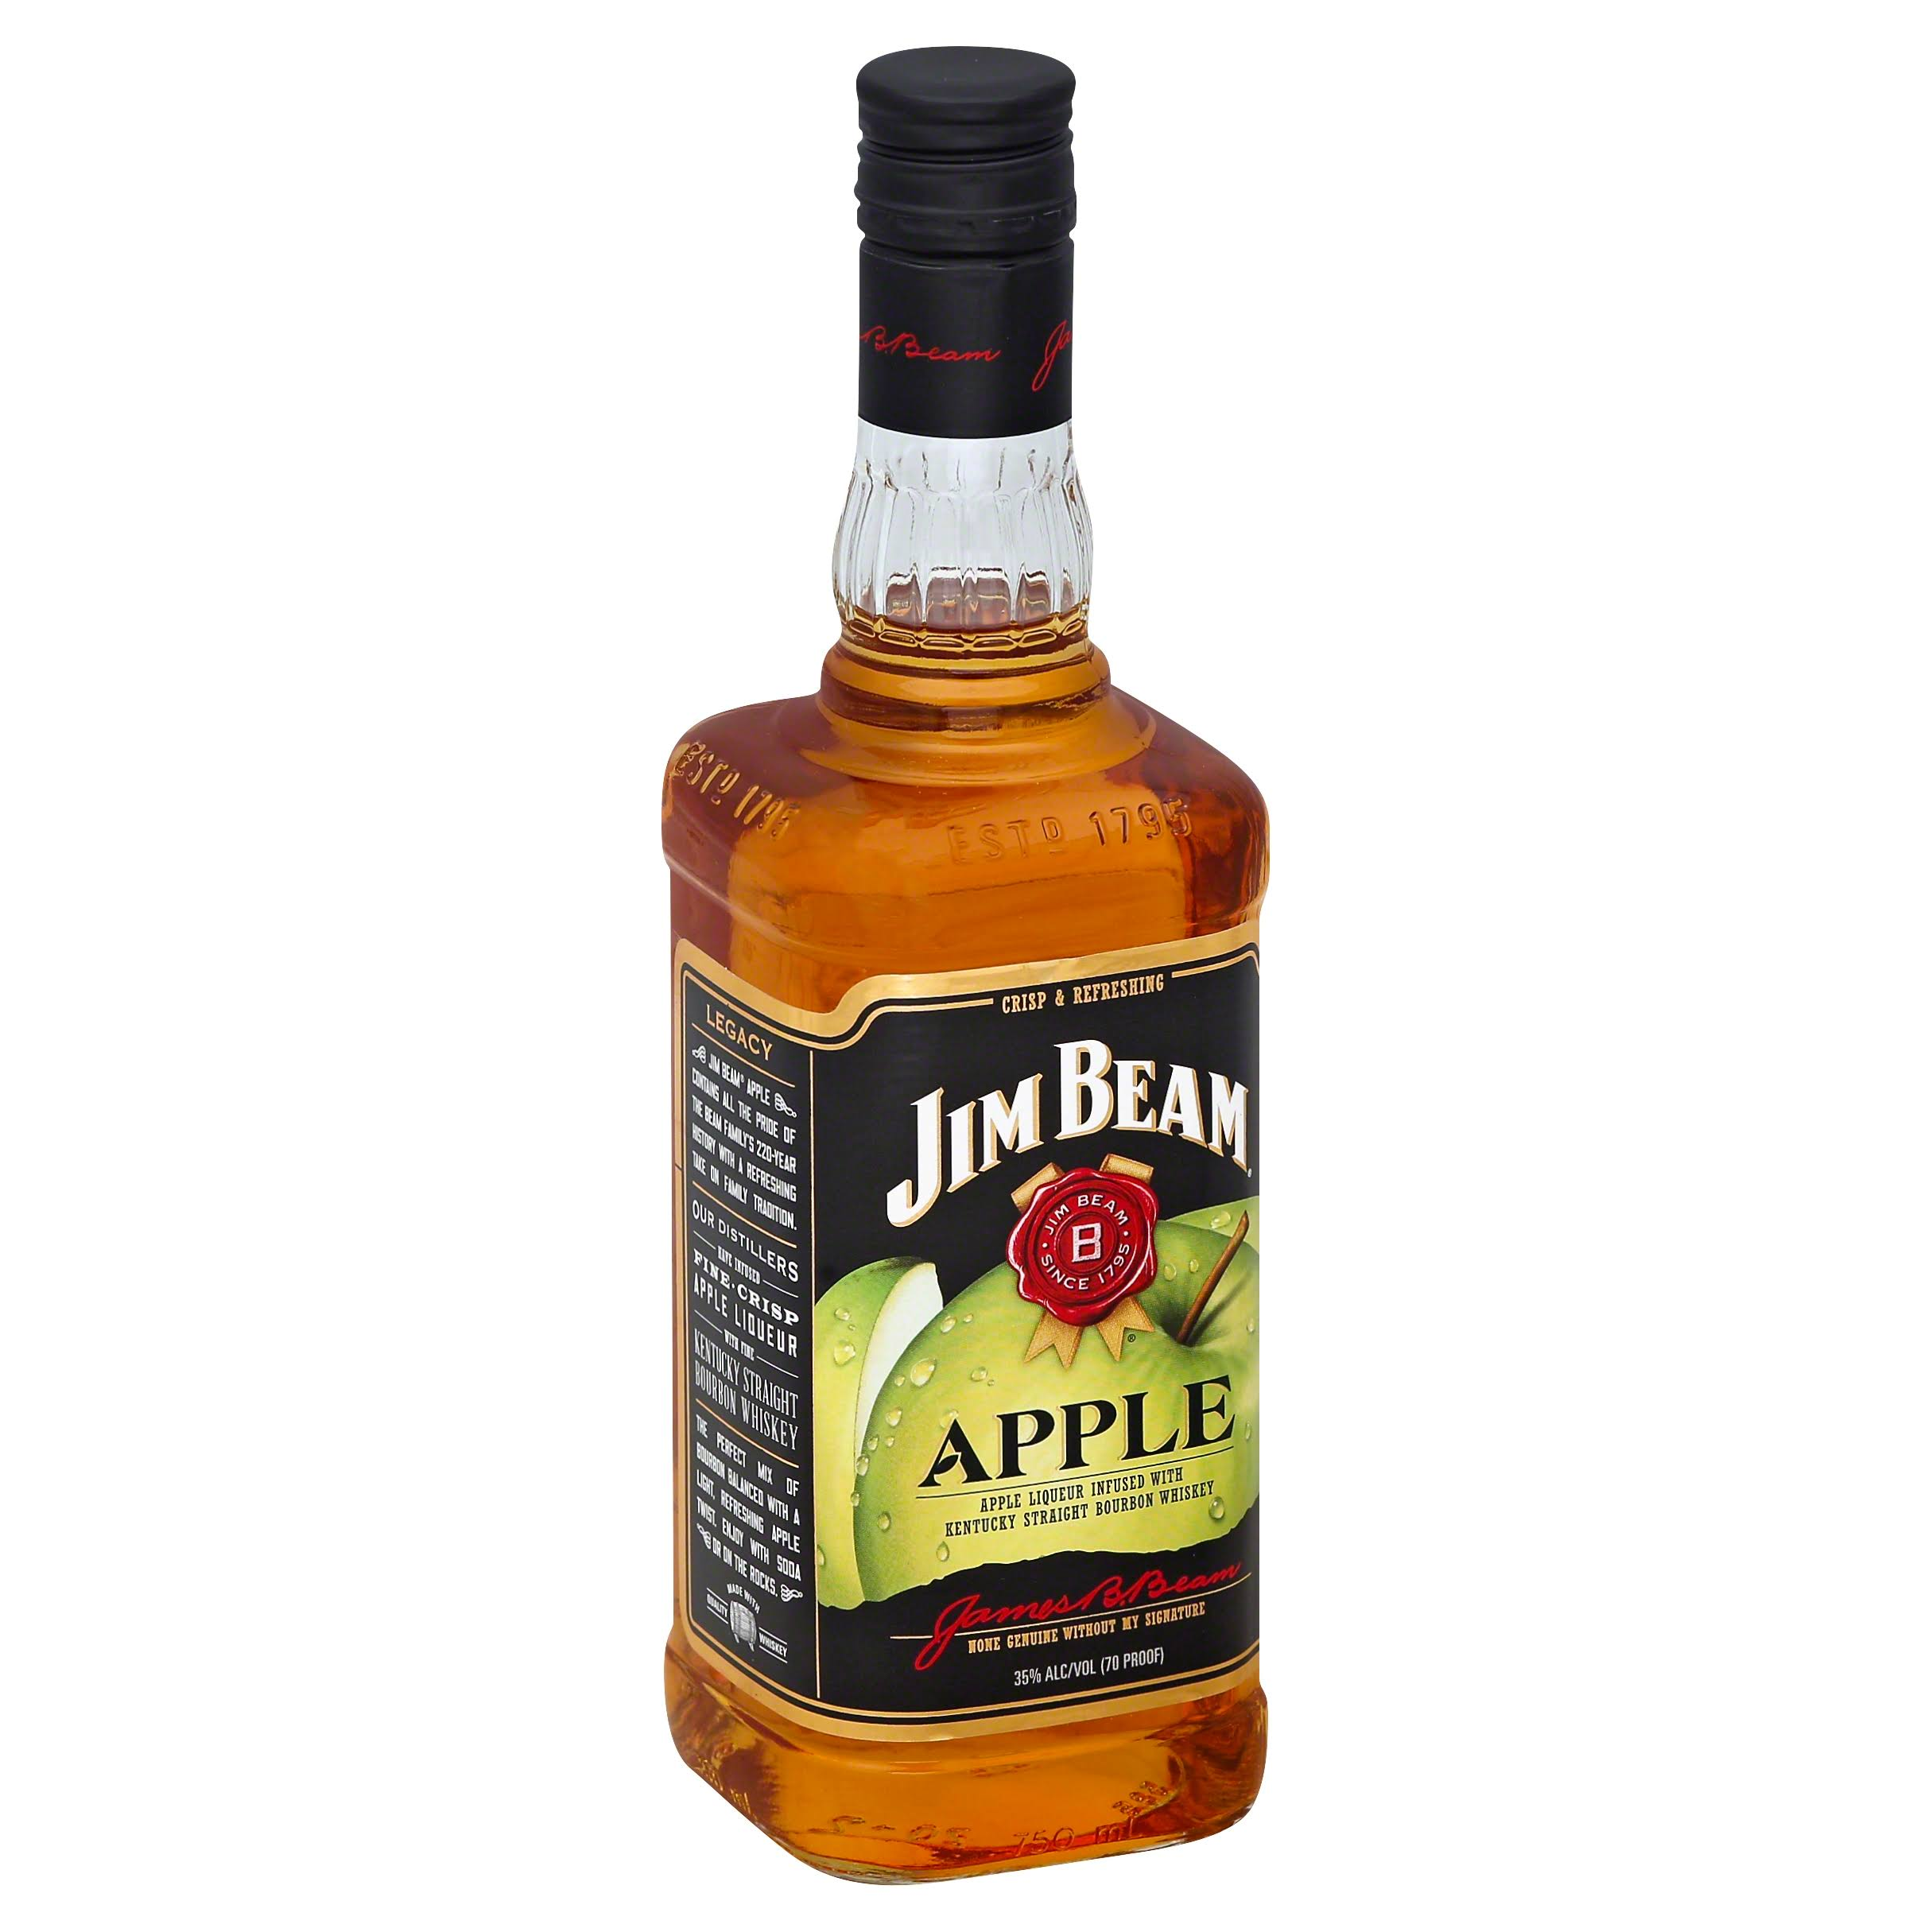 Jim Beam Apple Kentucky Straight Bourbon Whiskey - 750ml